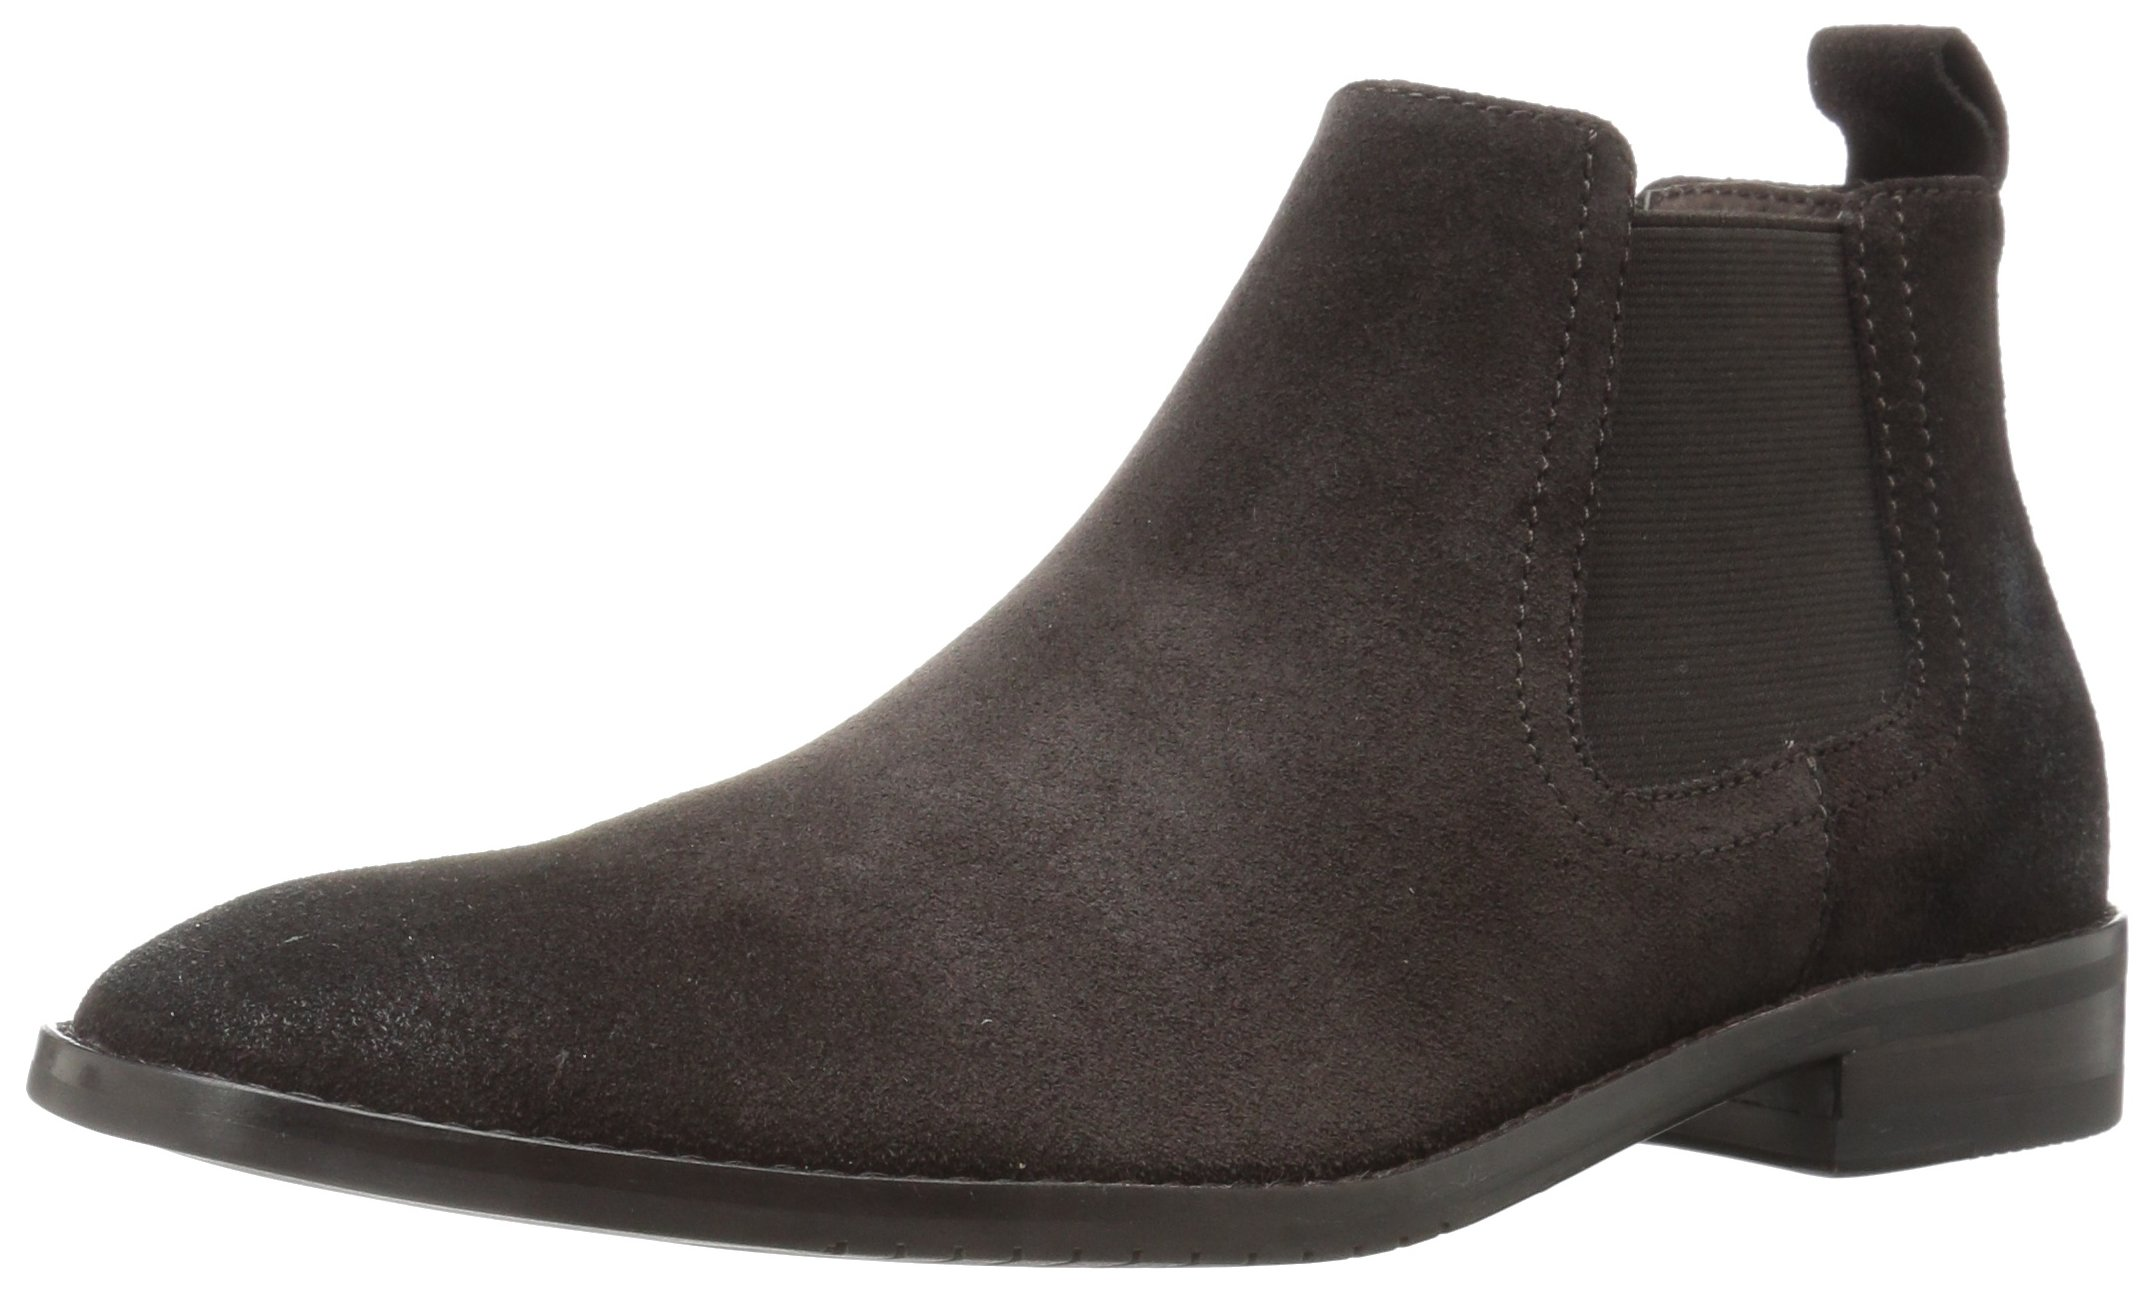 206 Collective Men's Capitol Ankle Chelsea Boot, Chocolate Brown Burnish, 10 D US